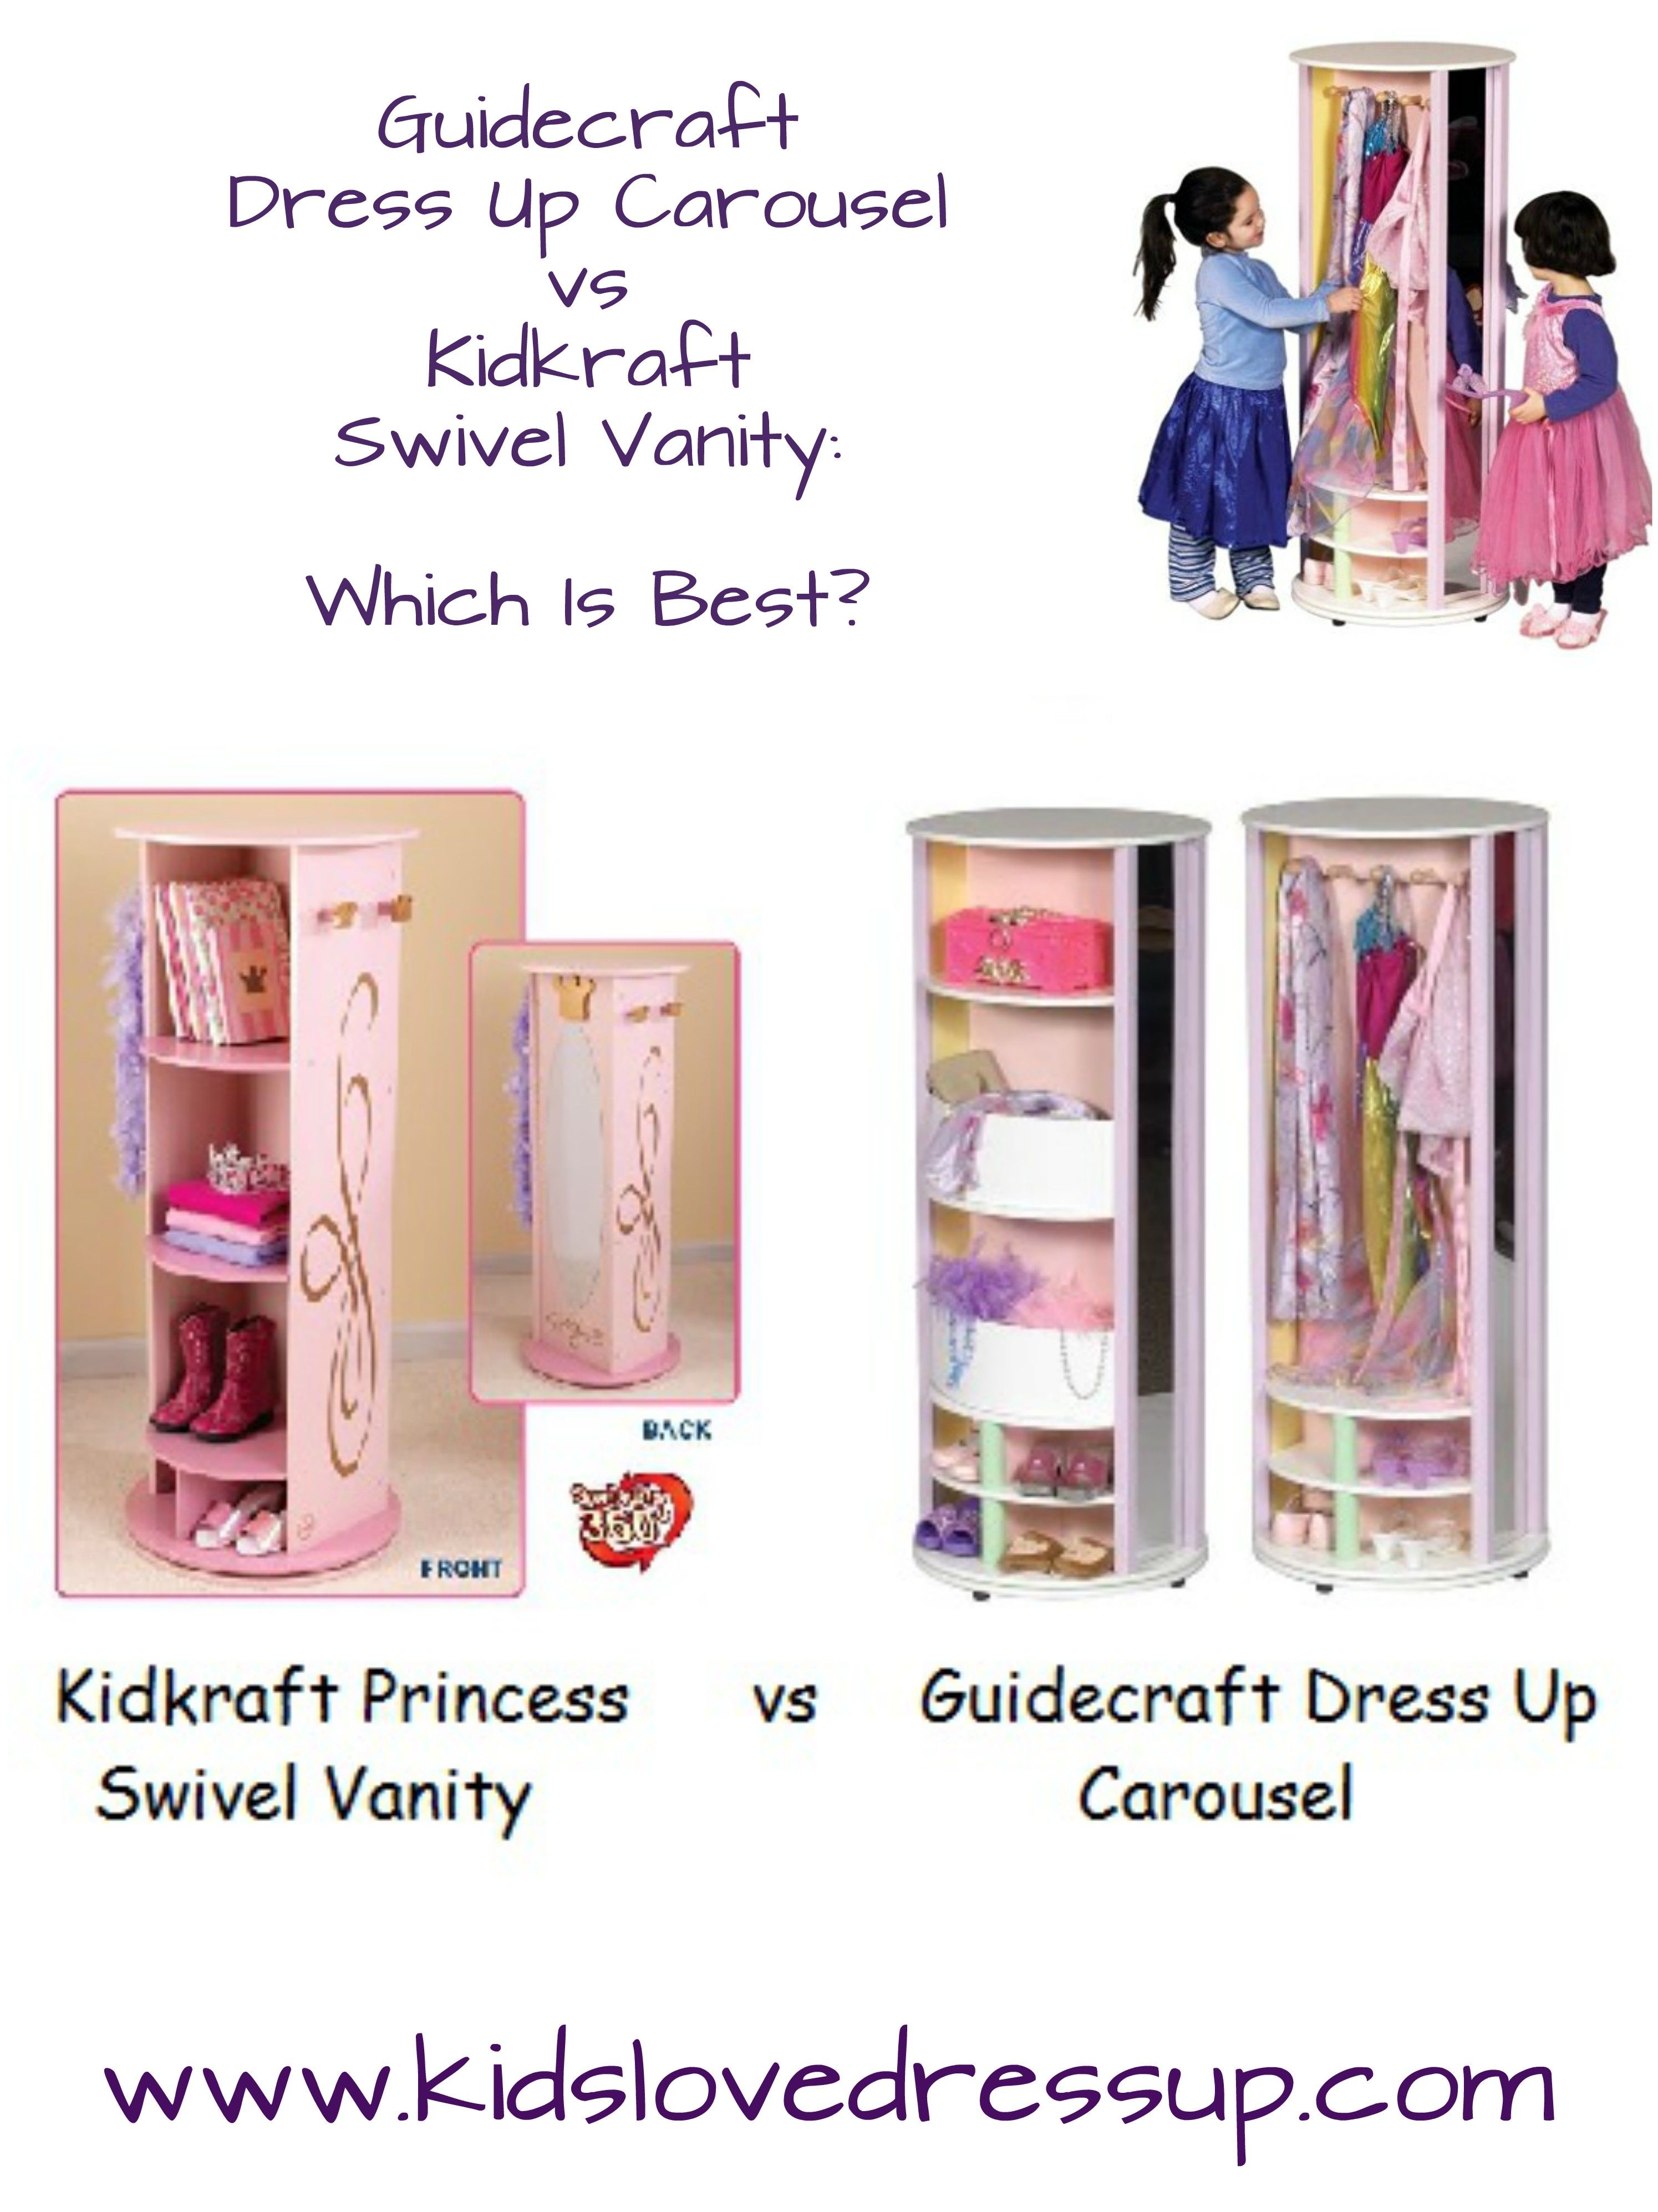 Vertical Dress Up Storage U003d AWESOME For Small Spaces! Read The Pros U0026 Cons  For Both Of These Popular Spinning Storage Solutions On This Blog Post At  ...